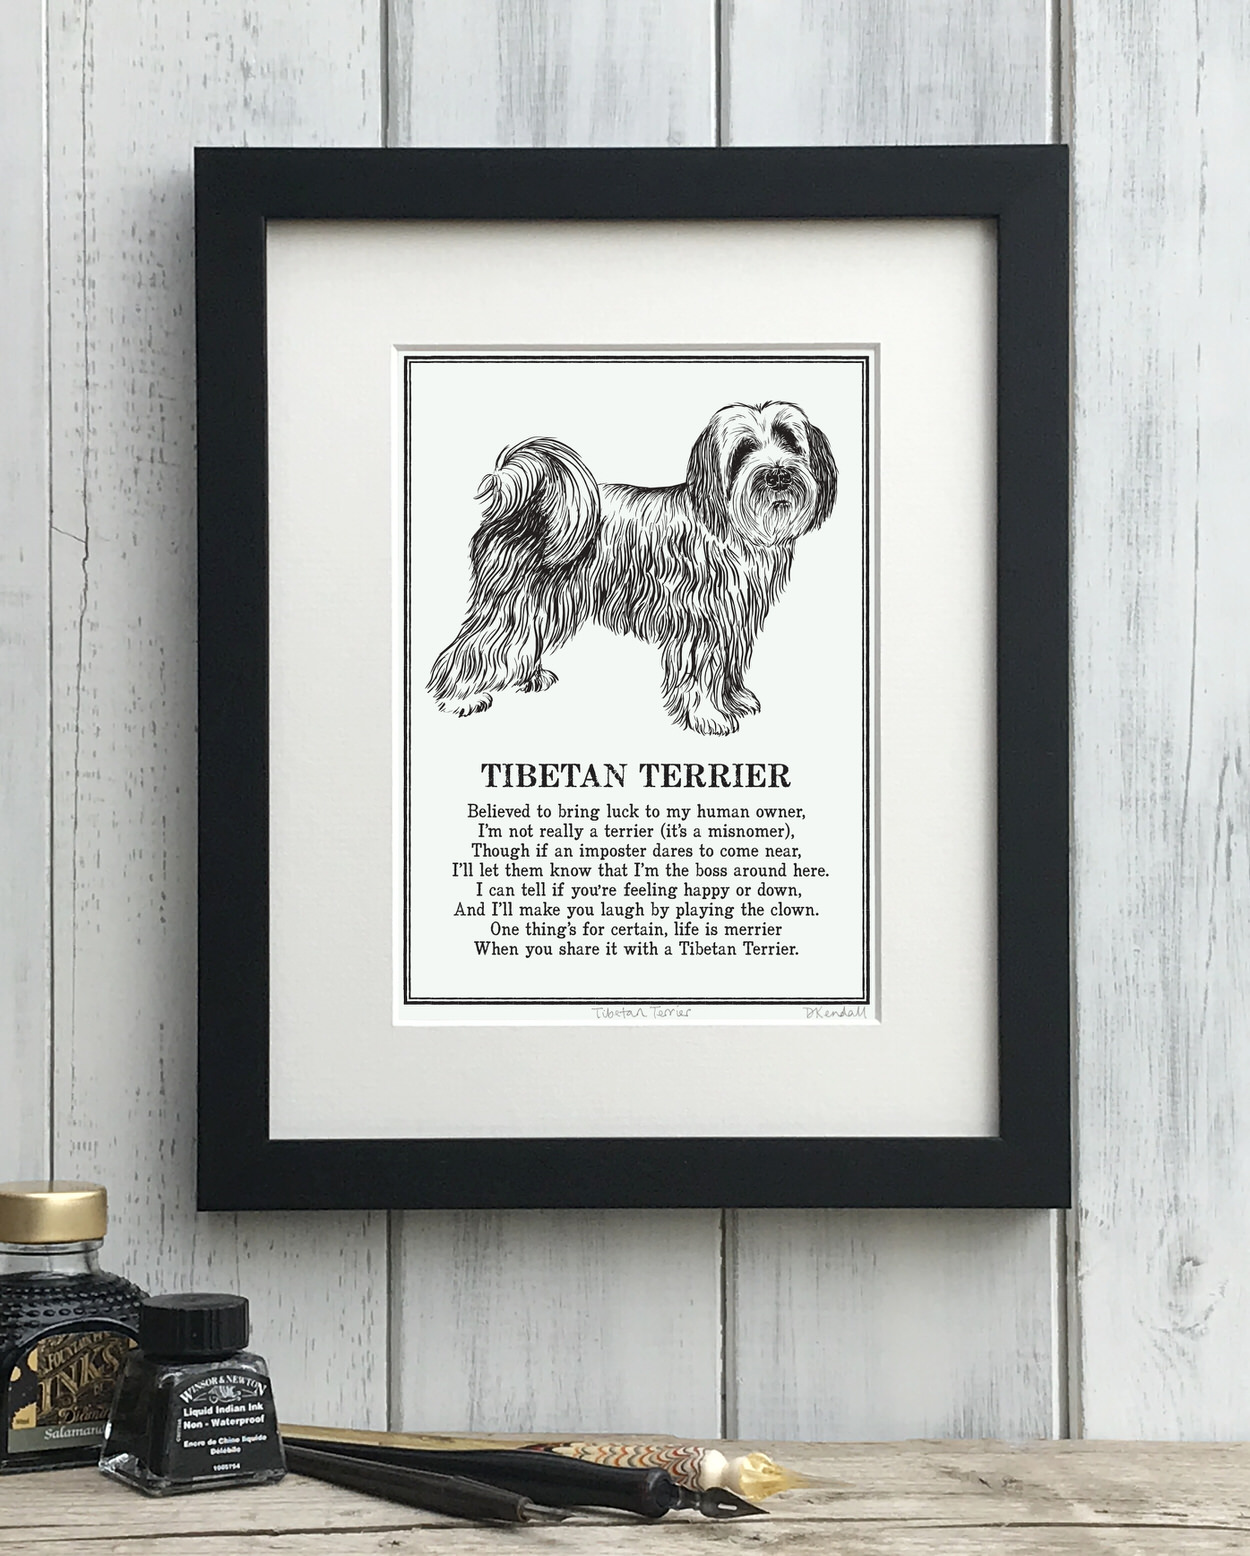 Tibetan Terrier print illustrated poem by The Enlightened Hound